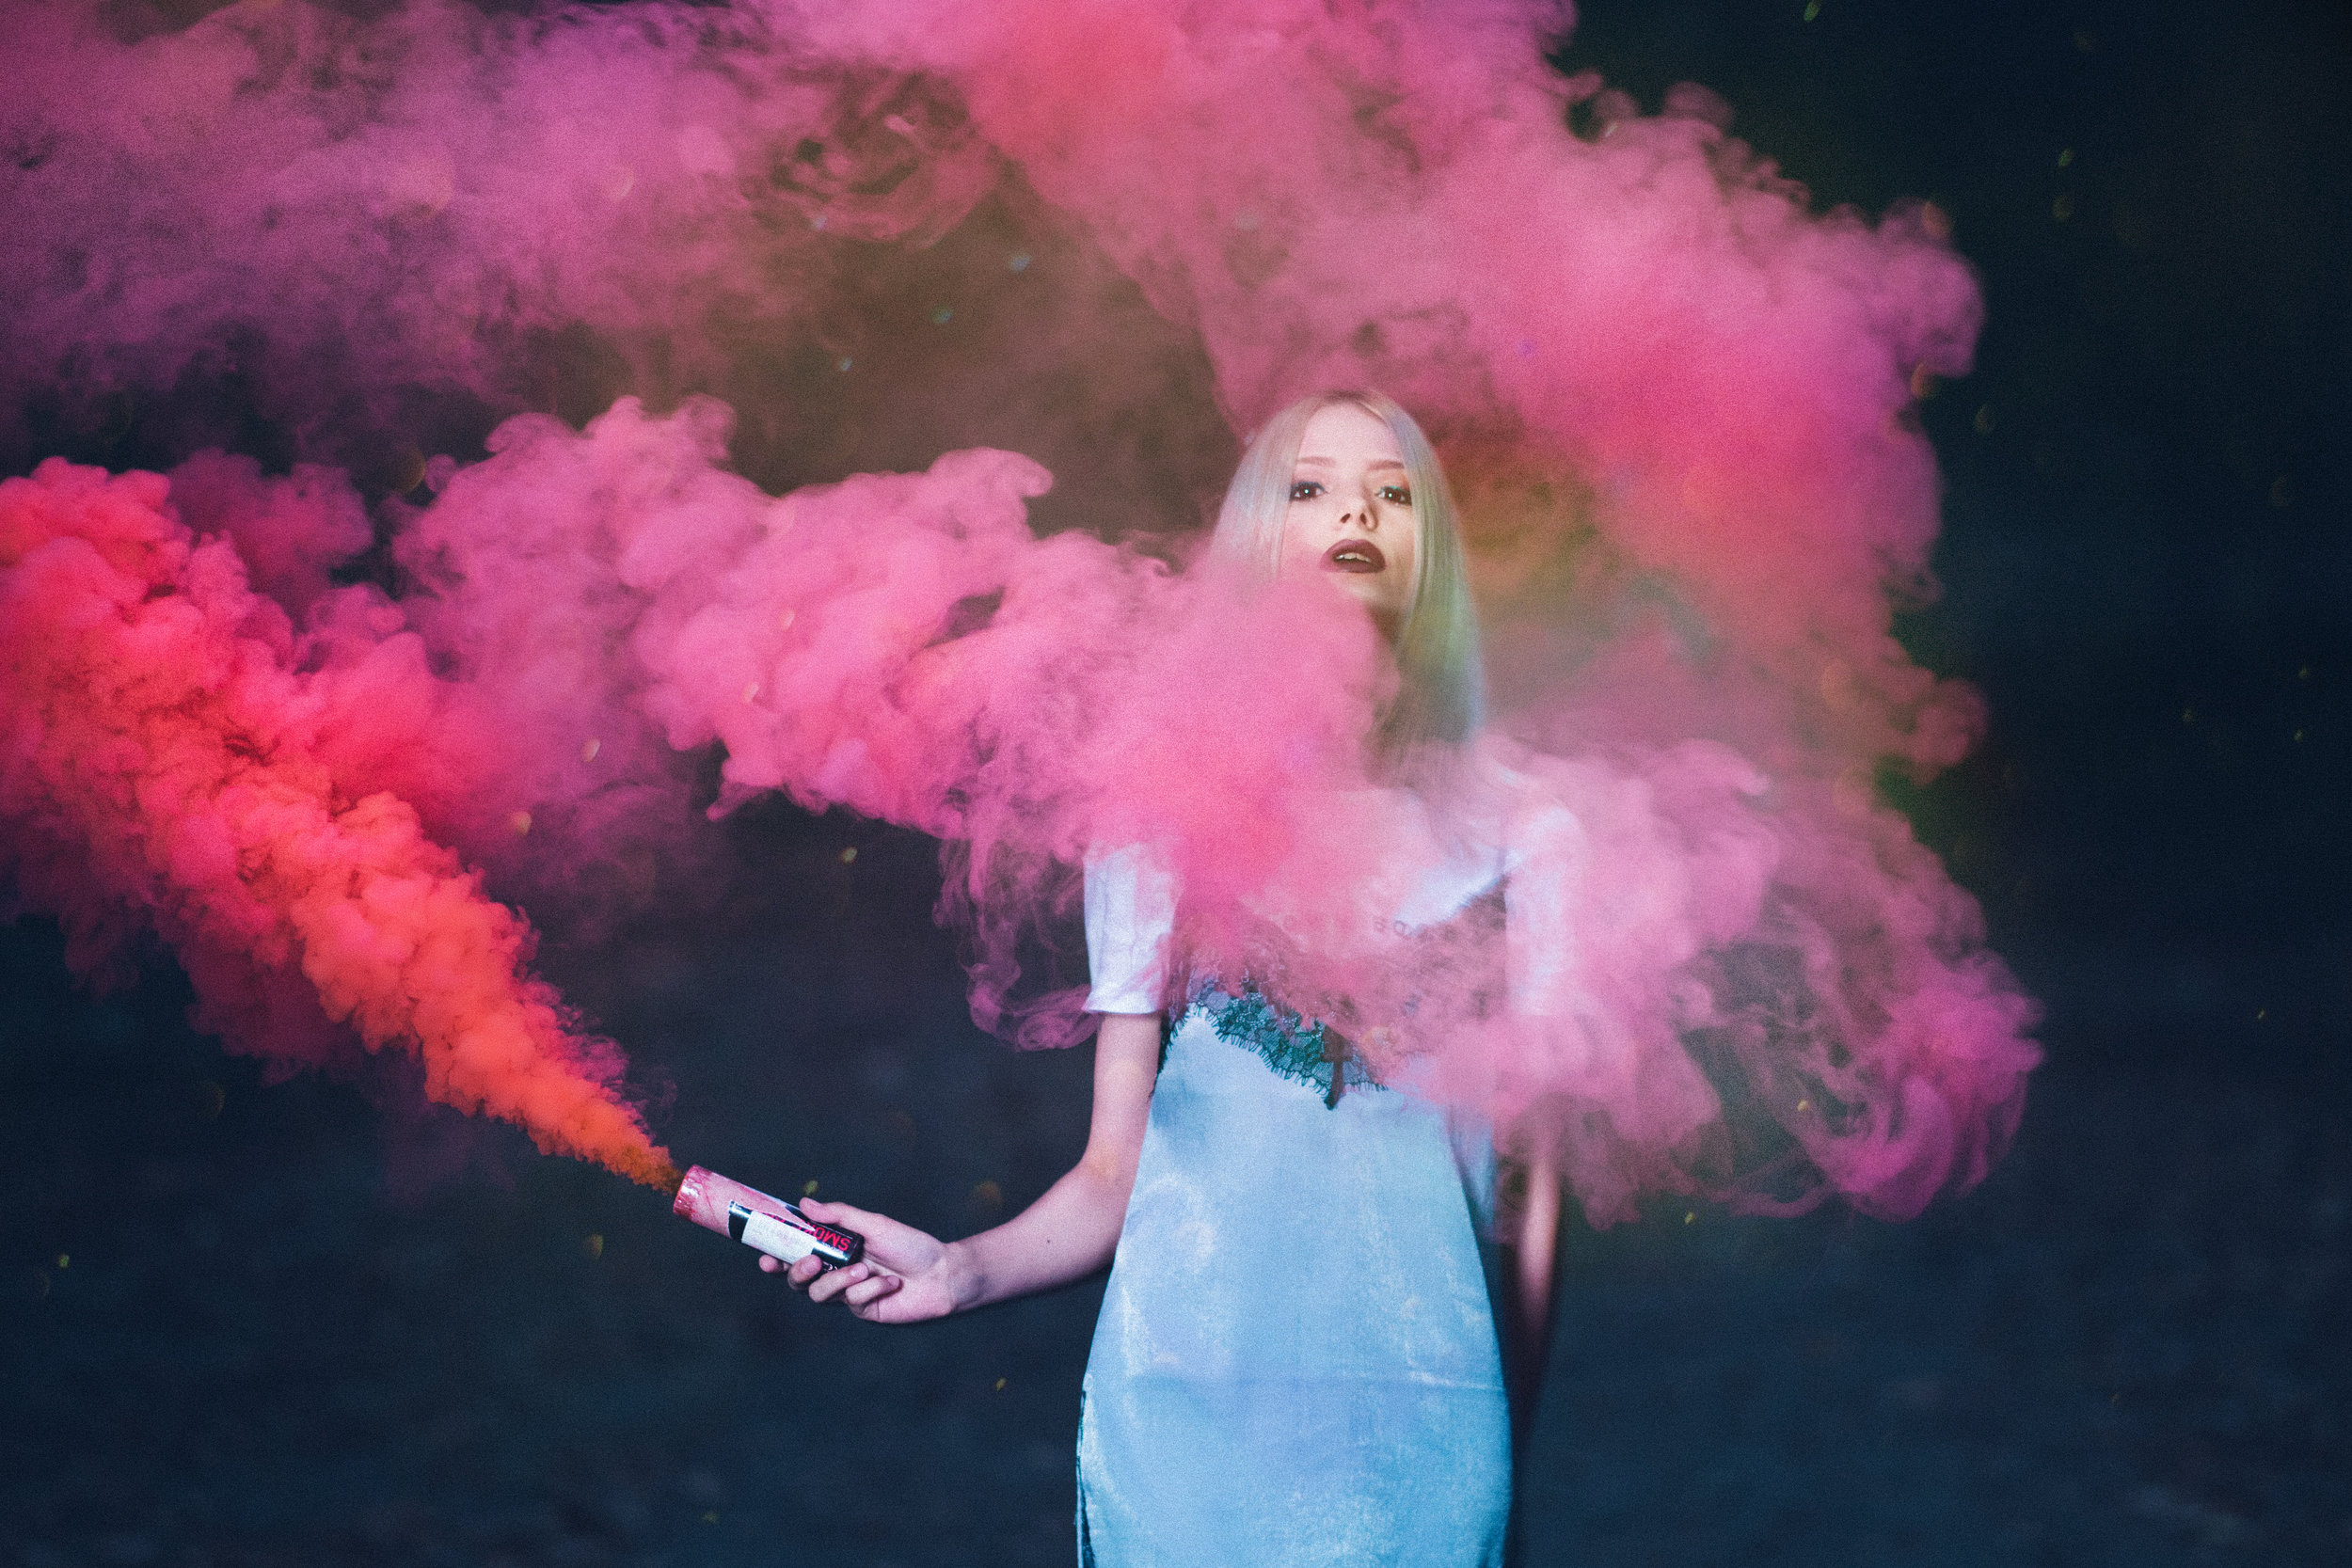 woman in forest playing with pink smoke colour fotografie artistic creative crina popescu .jpg